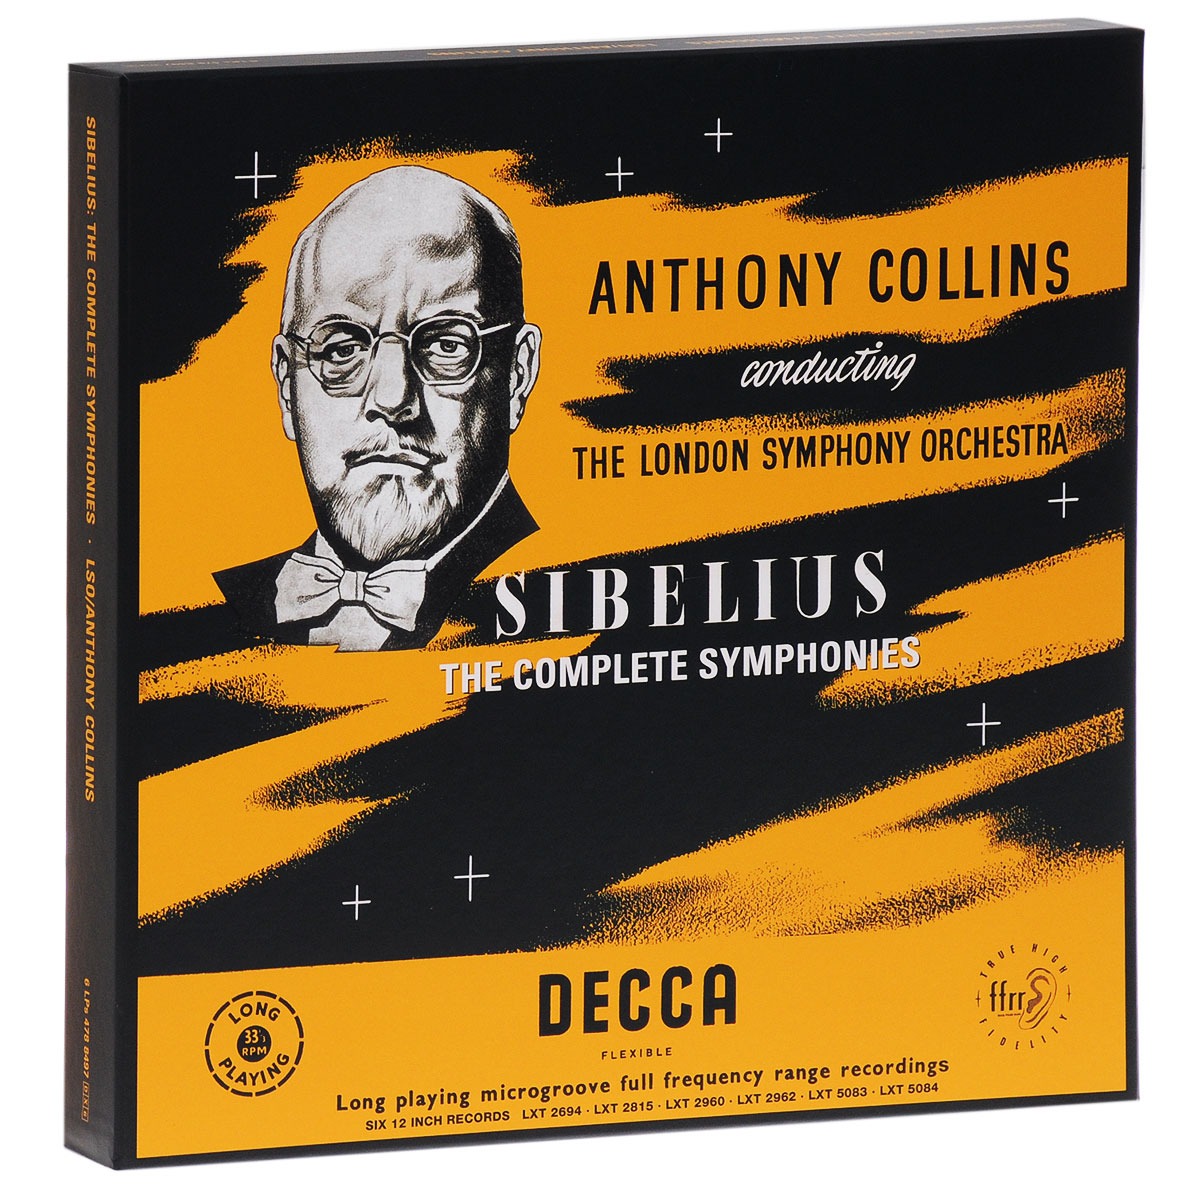 Энтони Коллинз,The London Symphony Orchestra Anthony Collins. Sibelius. The Complete Symphonies (6 LP) тромбоун шорти trombone shorty parking lot symphony lp